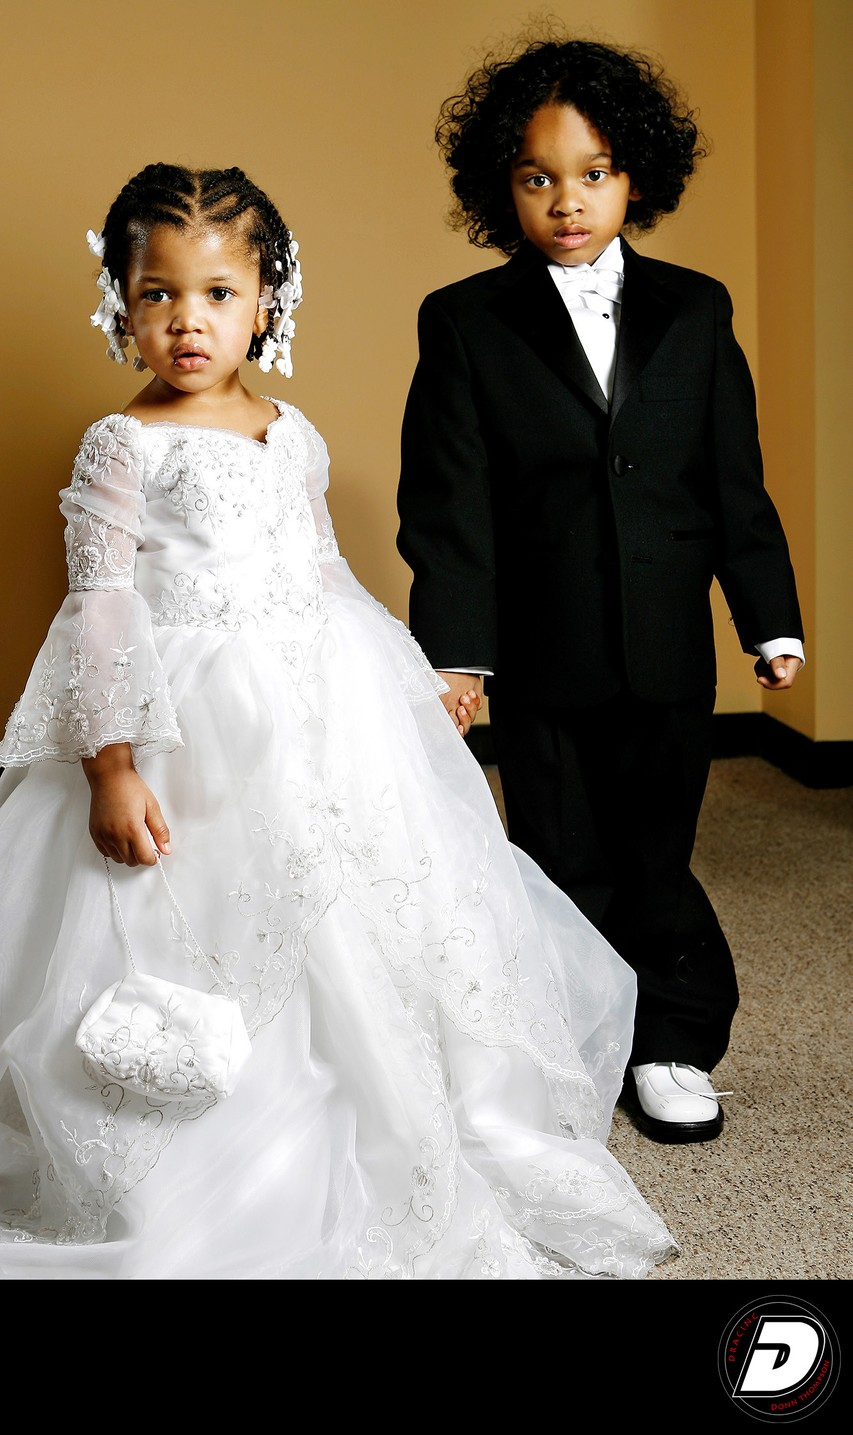 Children's Black Suit &  White Dress Wedding Fashion